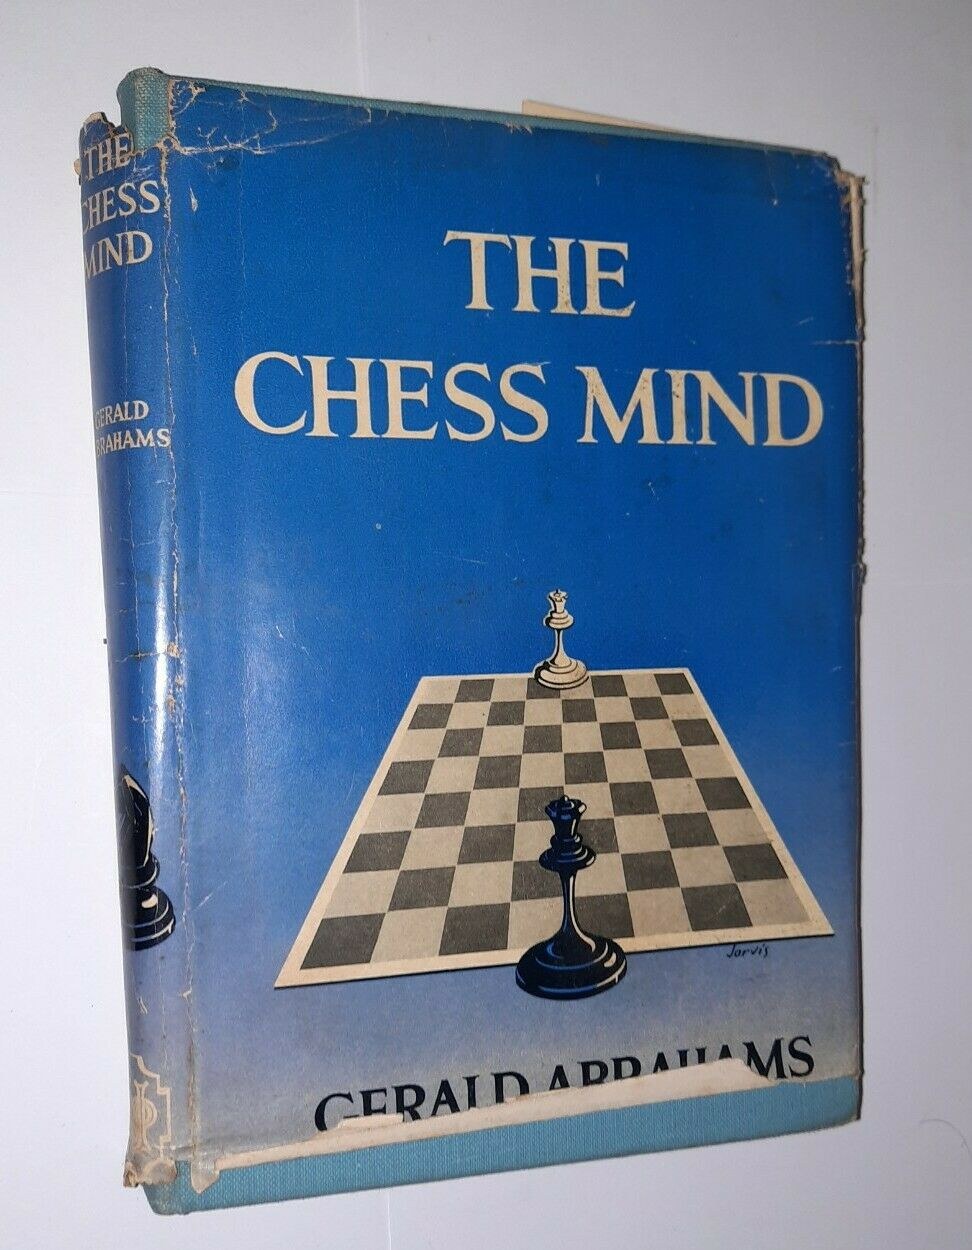 The Chess Mind, Gerald Abrahams, The English Universities Press, 1951, ISBN 0 340 19492 8